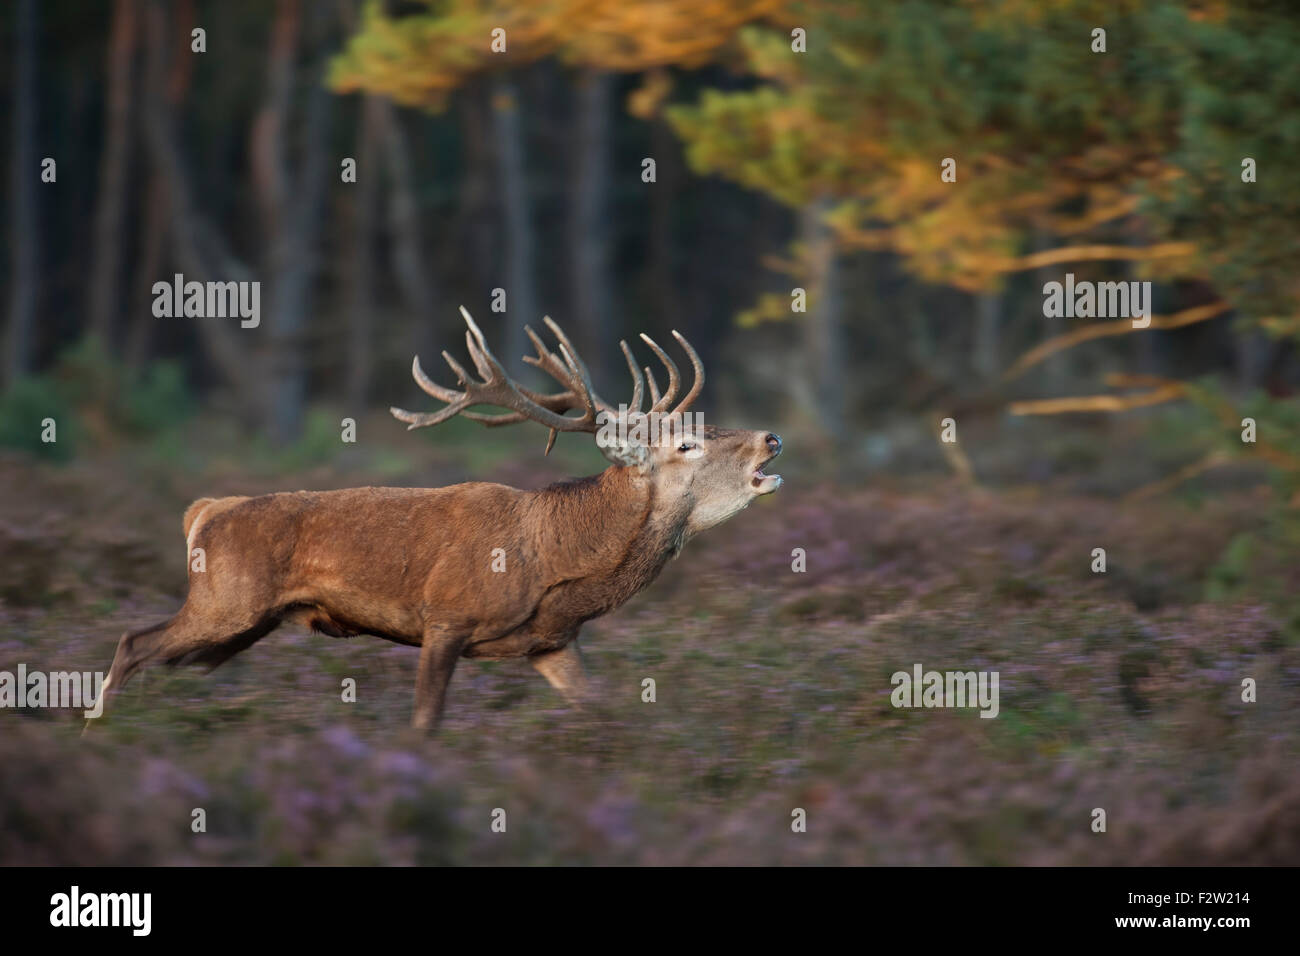 Panning image of a roaring Stag / Red deer / Rothirsch ( Cervus elaphus ) running through violett blossoming heather. - Stock Image